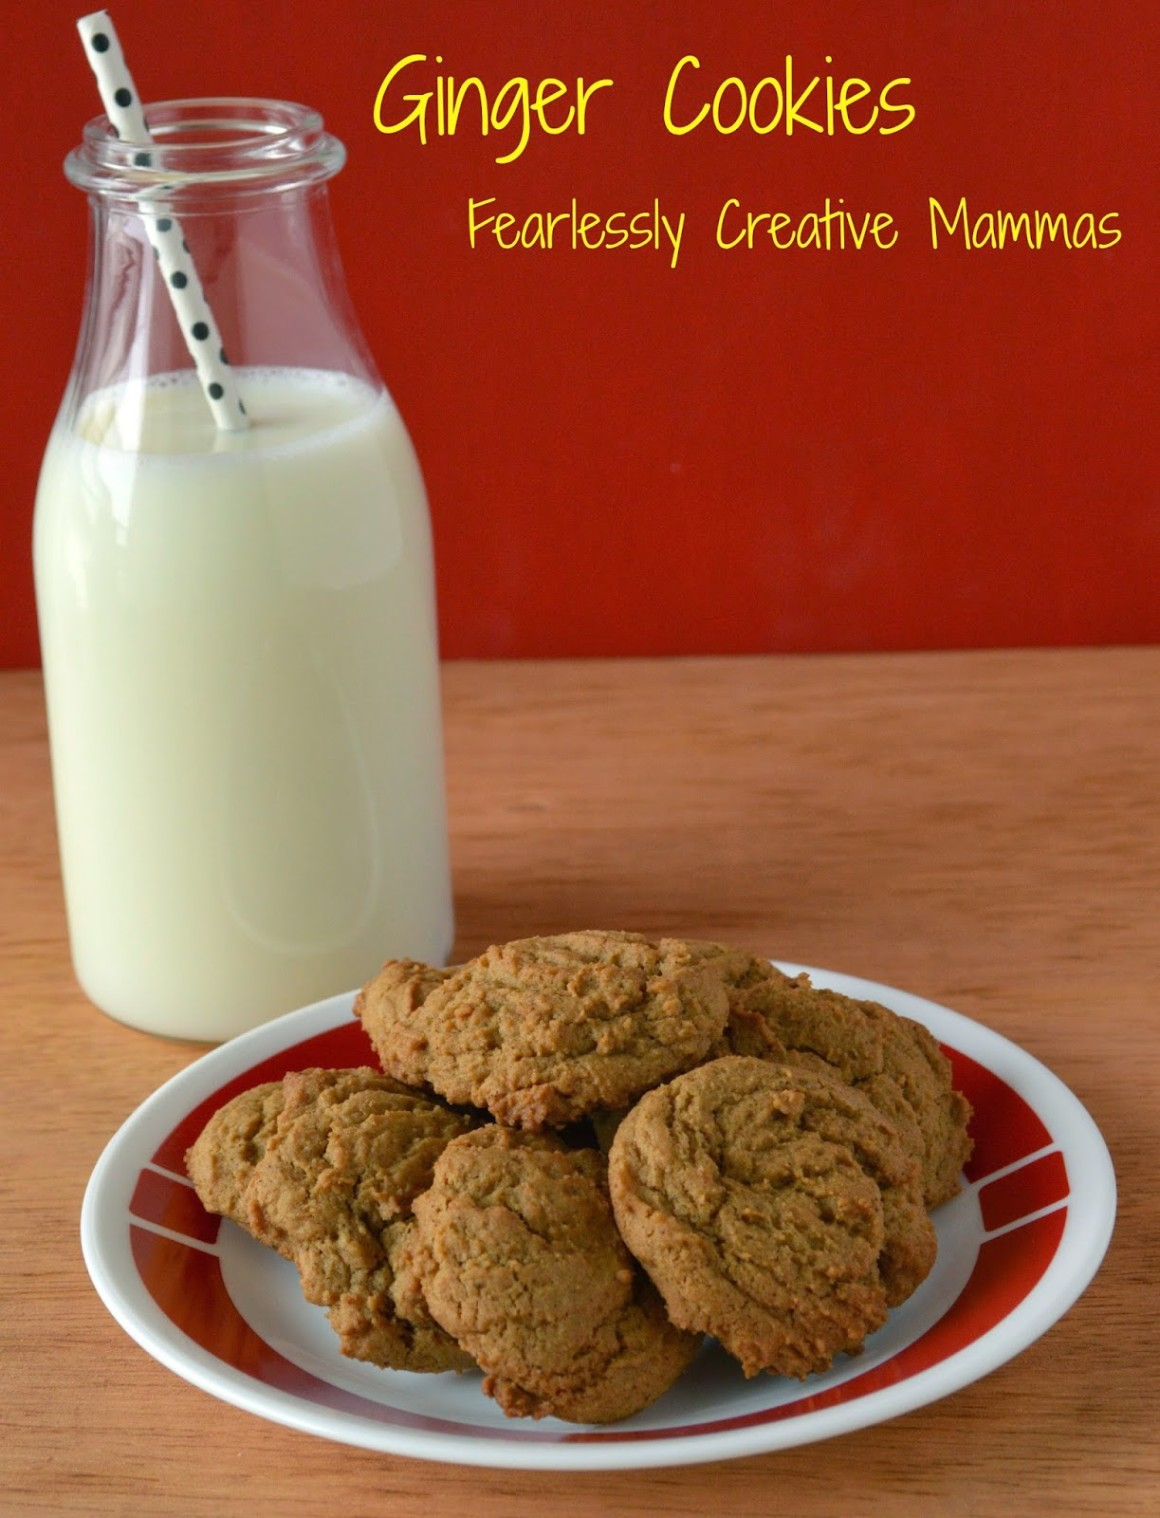 This ginger cookie recipe was developed as a cure for morning sickness during pregnancy. Sweet and ginger they cook up thick and fluffy. You'll love them.